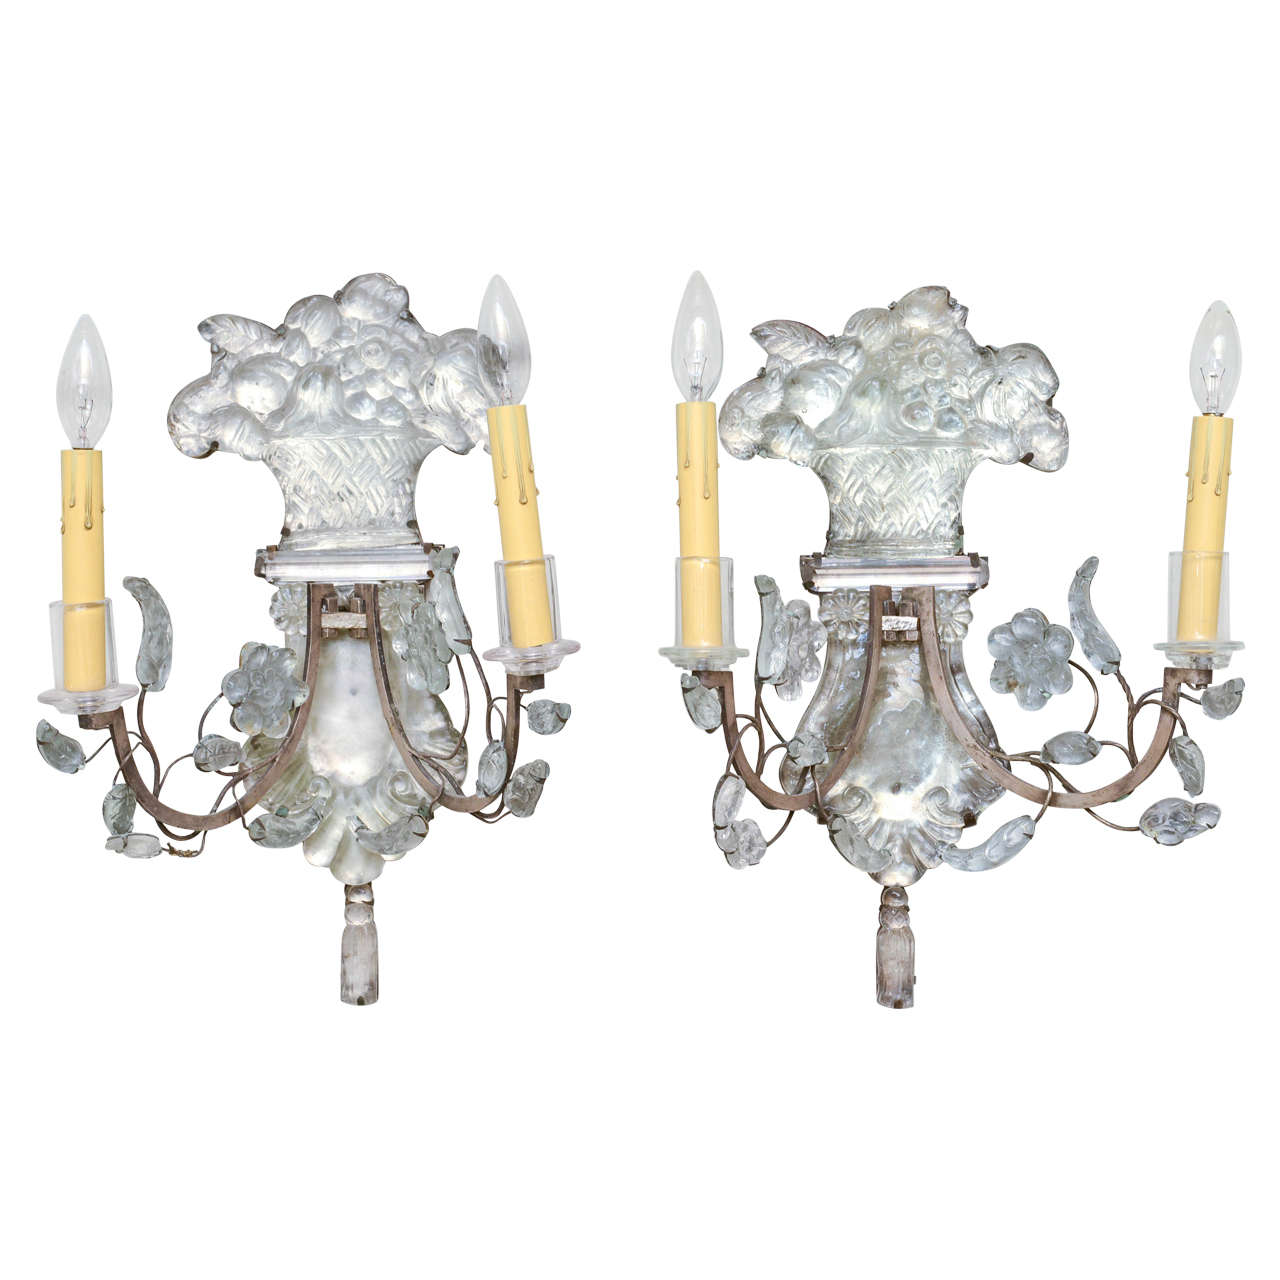 Unusual pair of glass wall sconces for sale at 1stdibs for Quirky items for sale